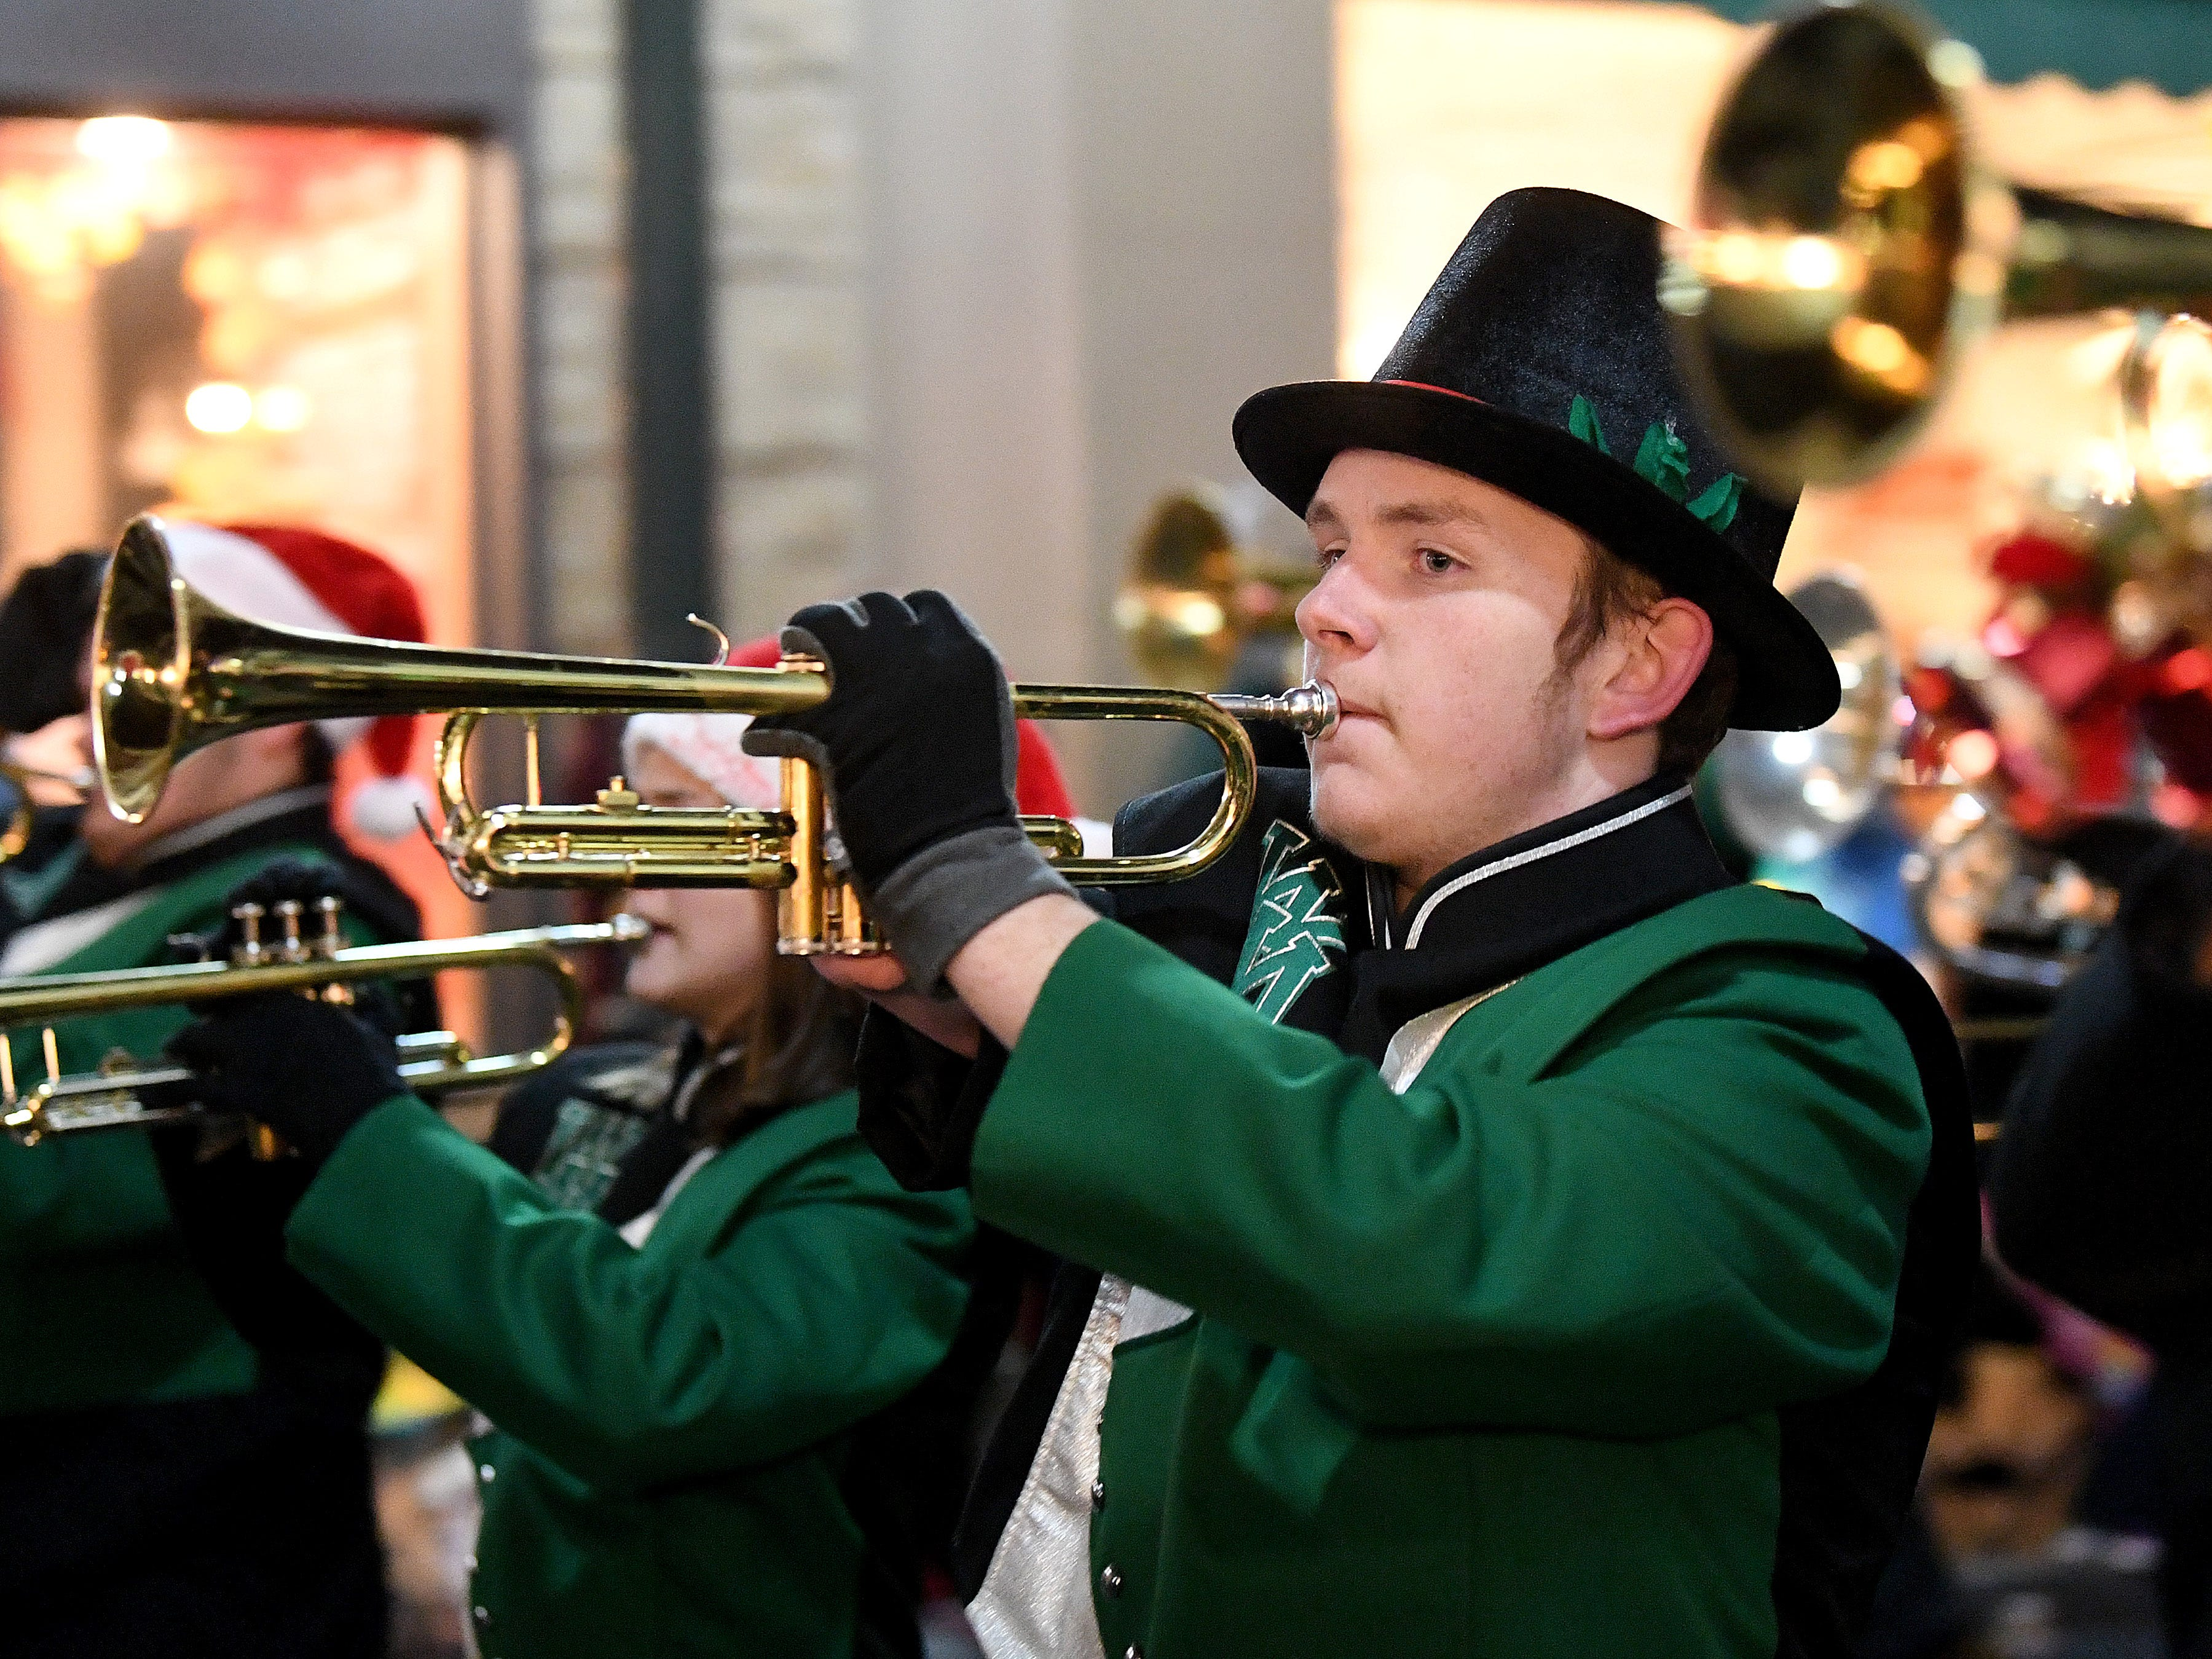 The Wilson Memorial High School marching band performs during the Staunton Christmas Parade on Monday, Nov. 26, 2018.